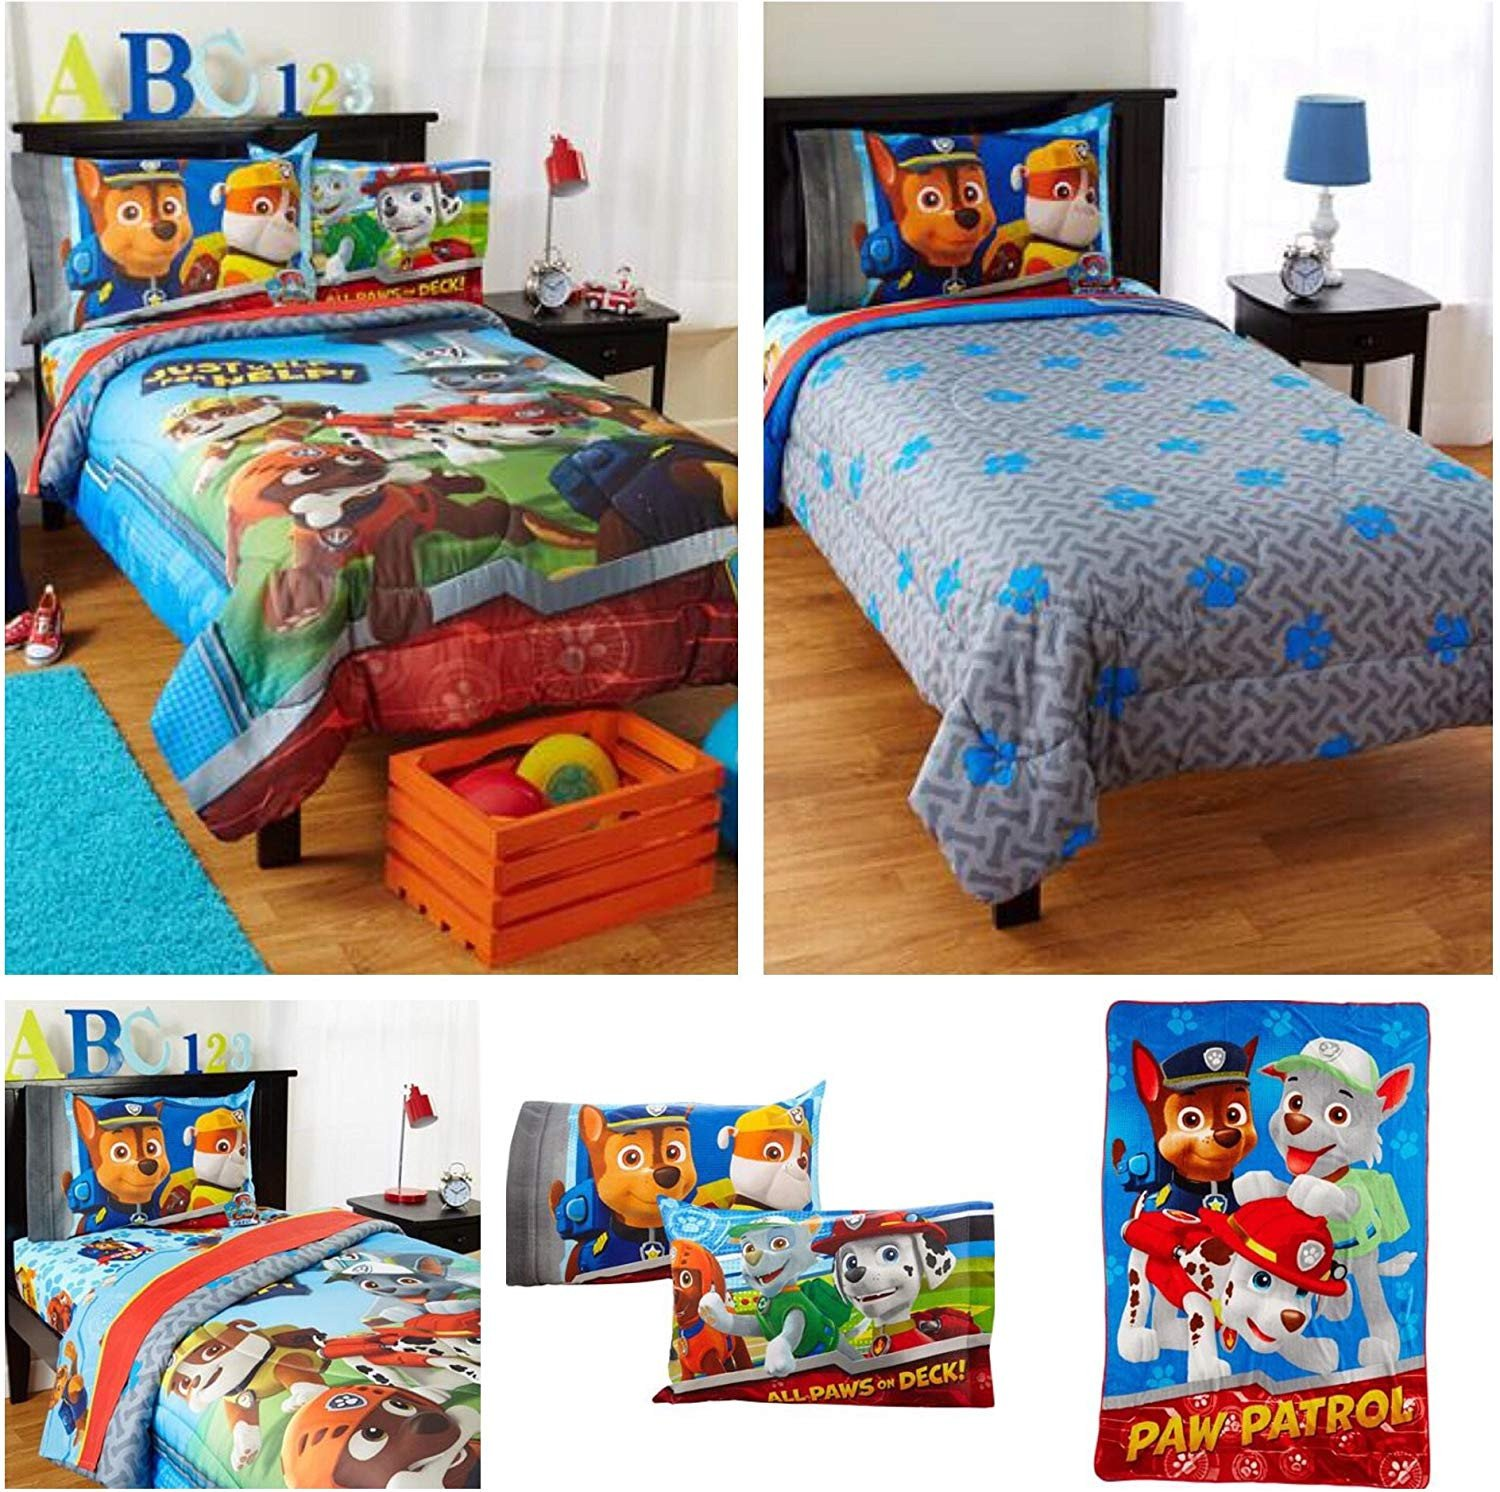 Paw Patrol Bedroom Set Luxury Amazon Nickelodeon Paw Patrol Kids Bed In A Bag Bedding